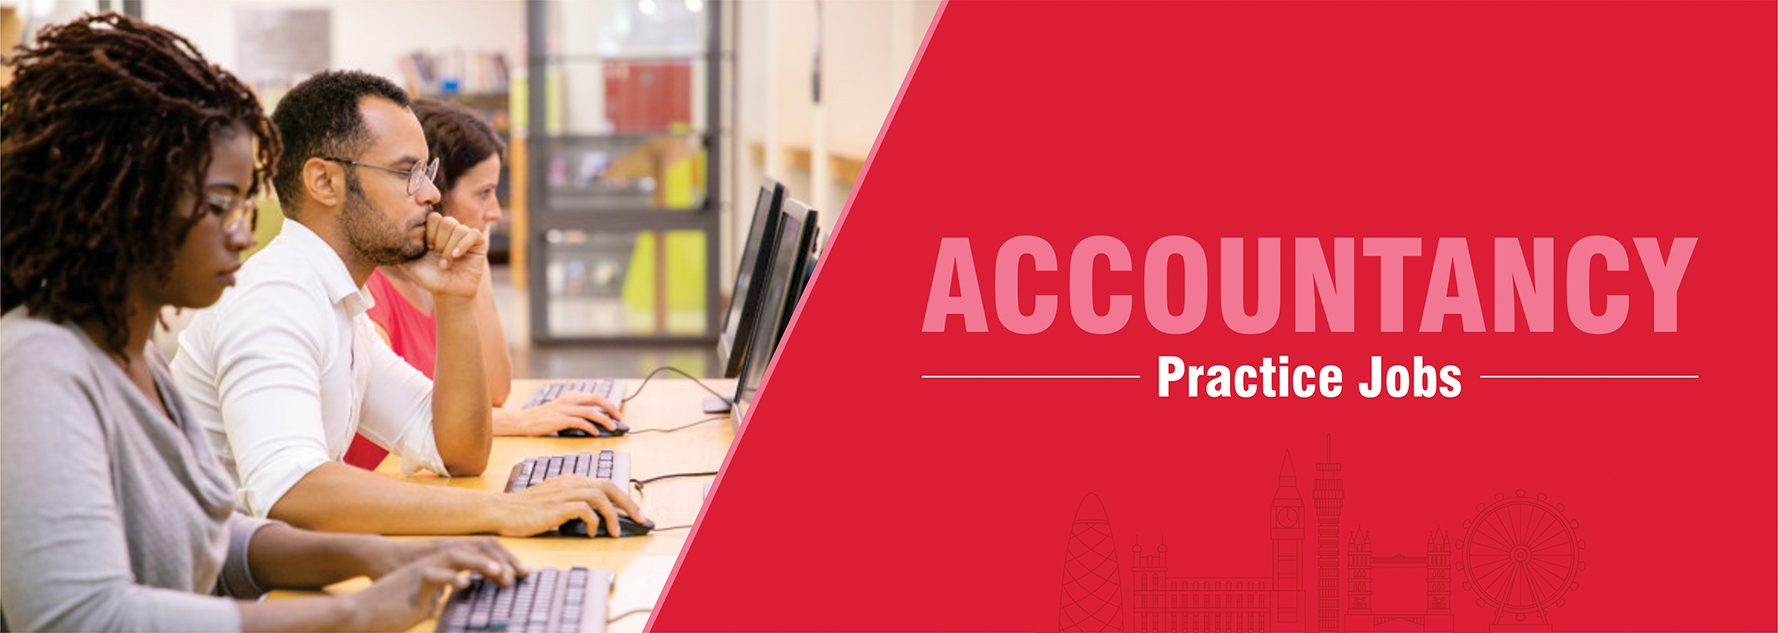 accountancy-practice-jobs